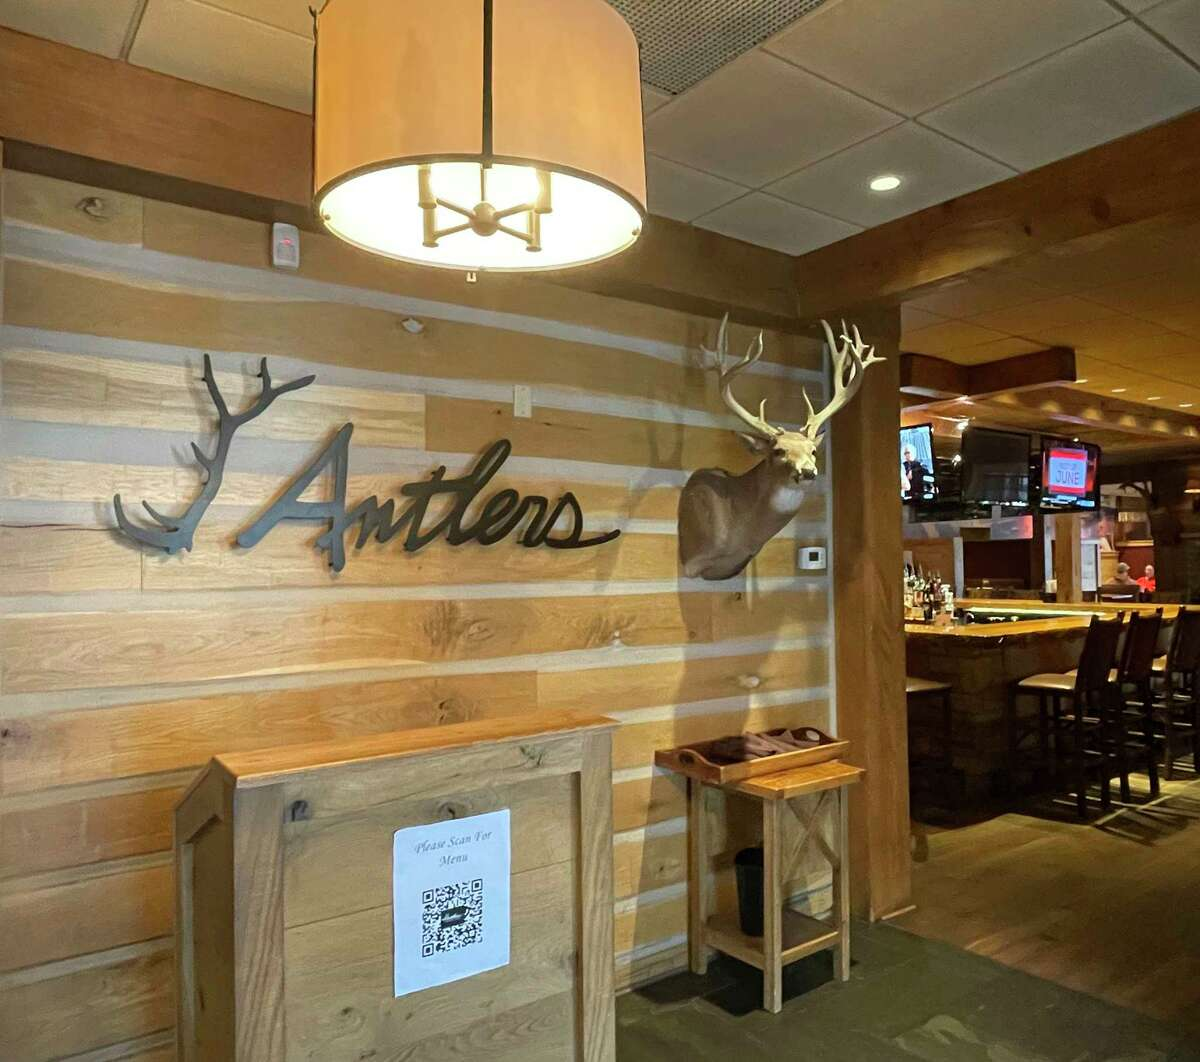 Antlers Fireside Grill in Stanwood is a go-to destination for quality food in a cozy, welcoming environment. (Pioneer photos/Joe Judd)